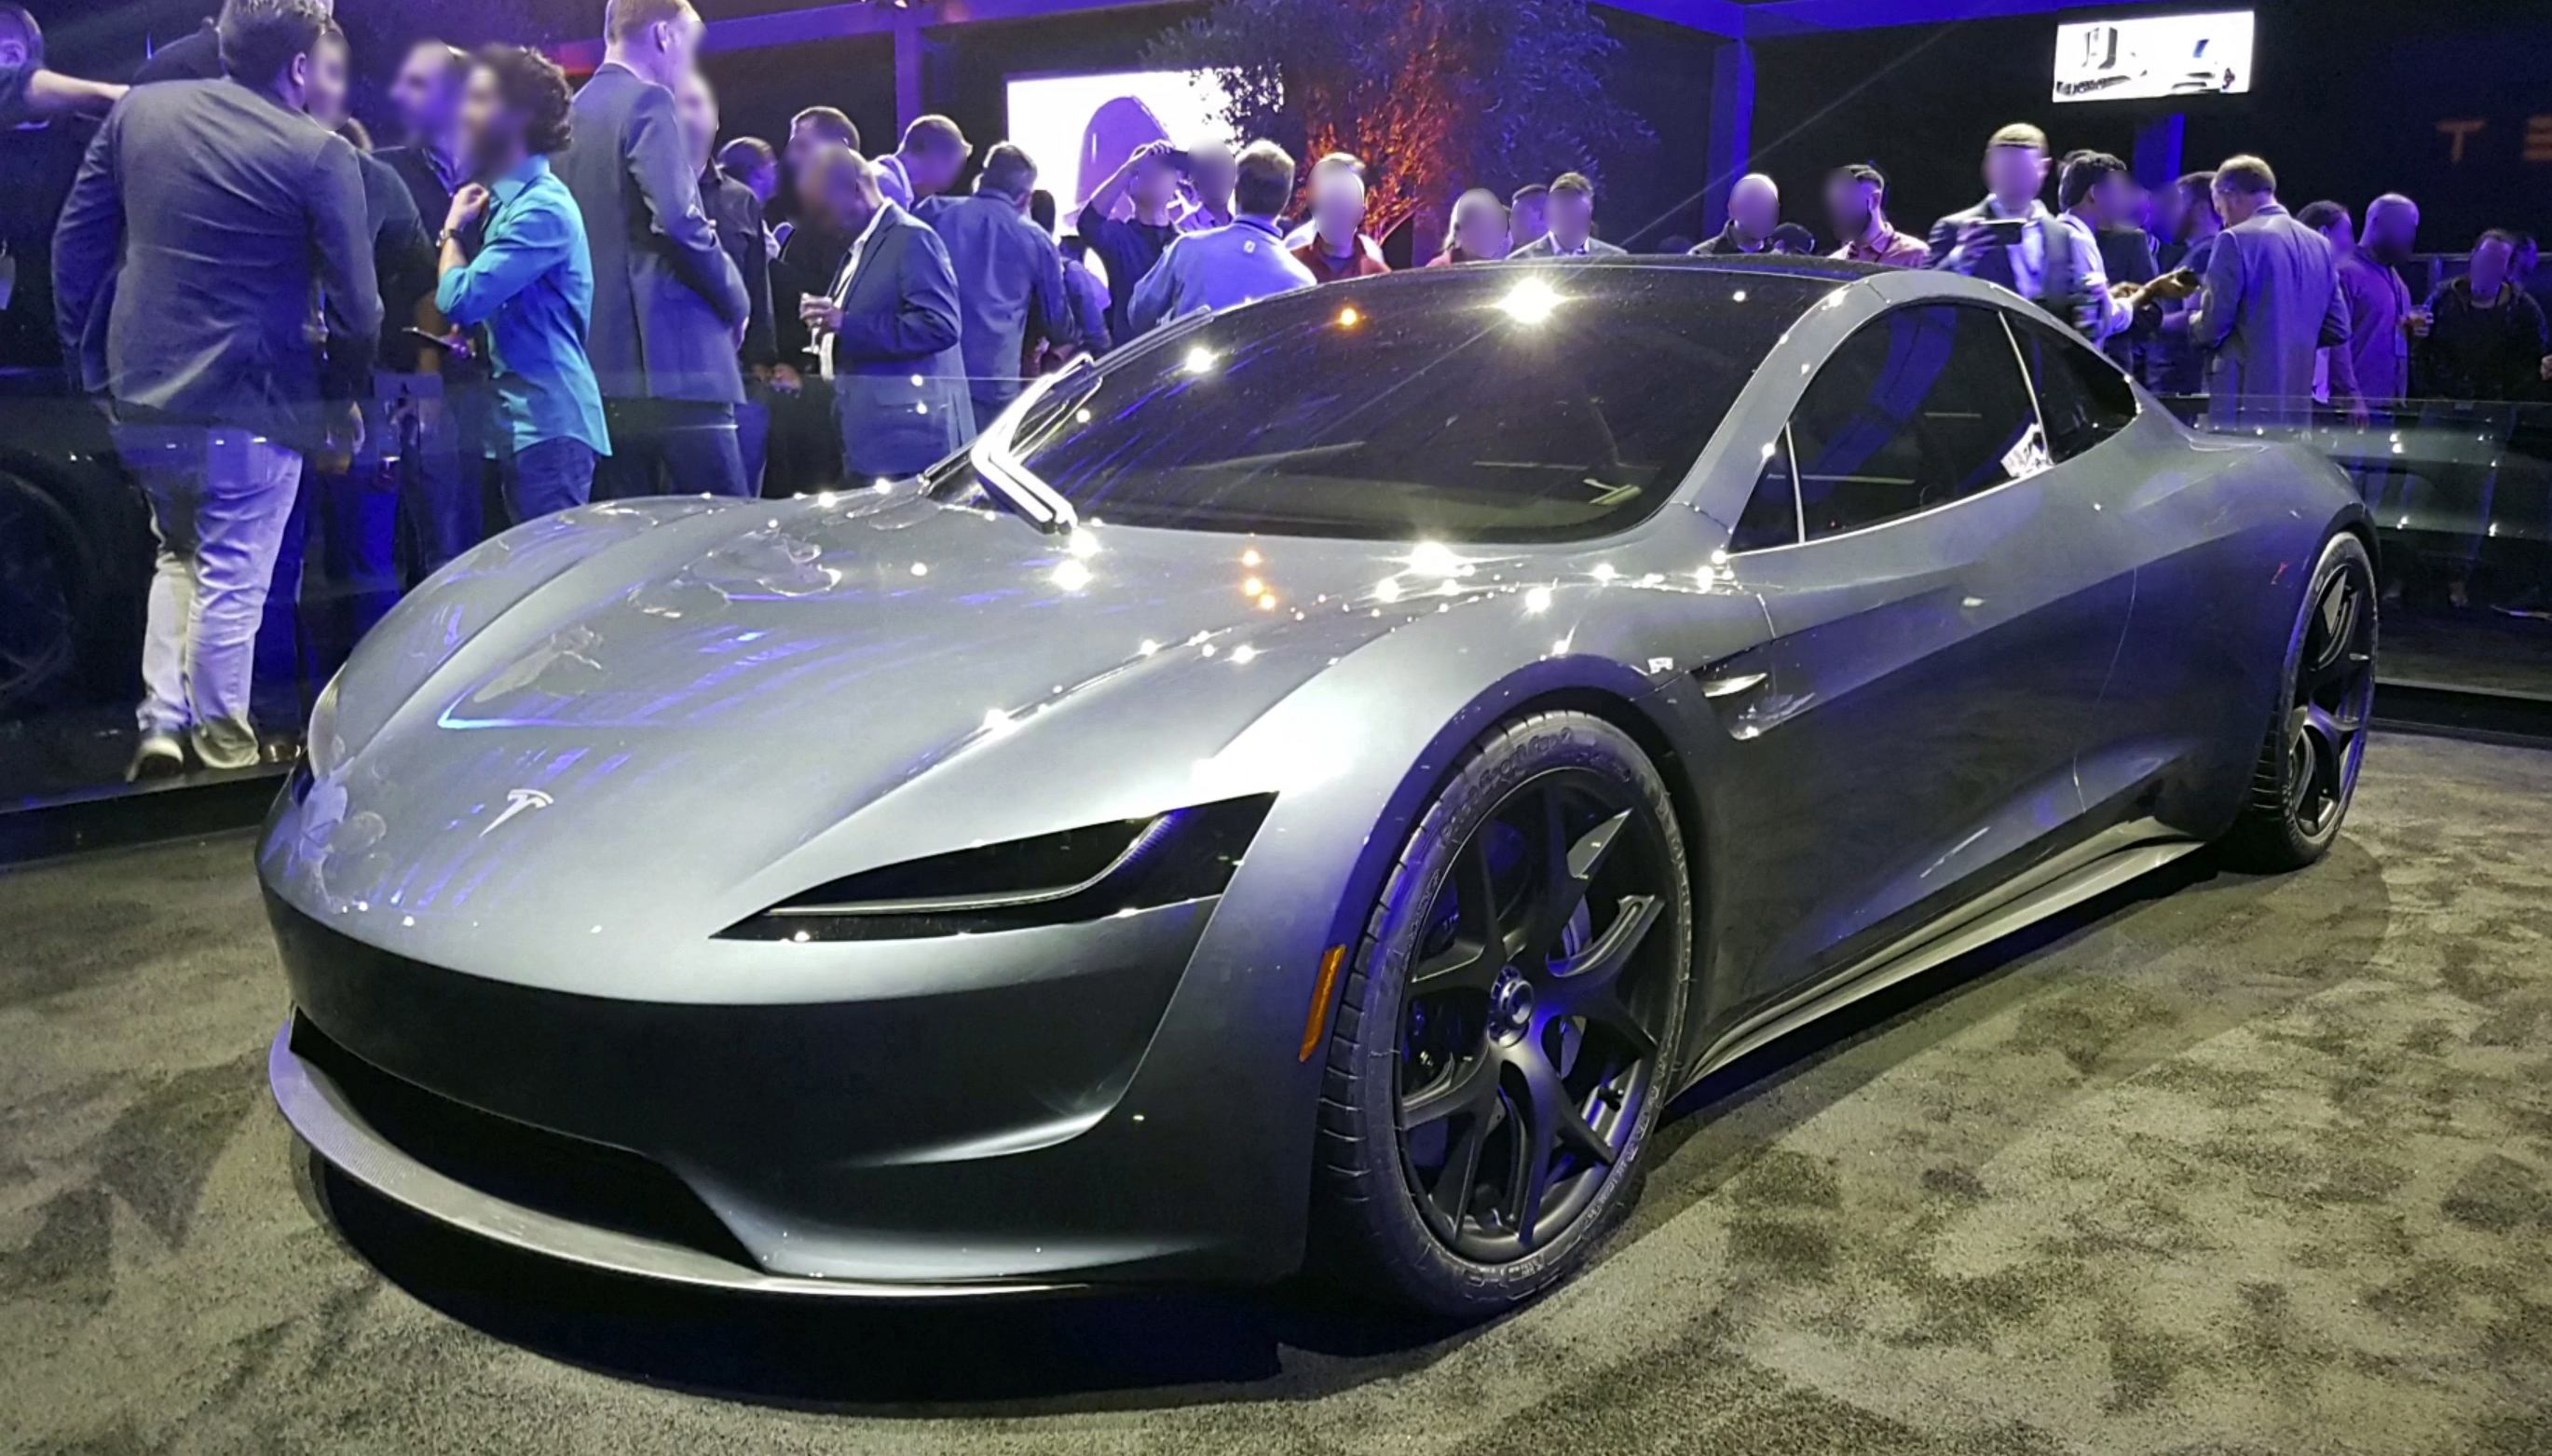 Tesla Roadster 2020 Prototype At The Launch Event In November 2017